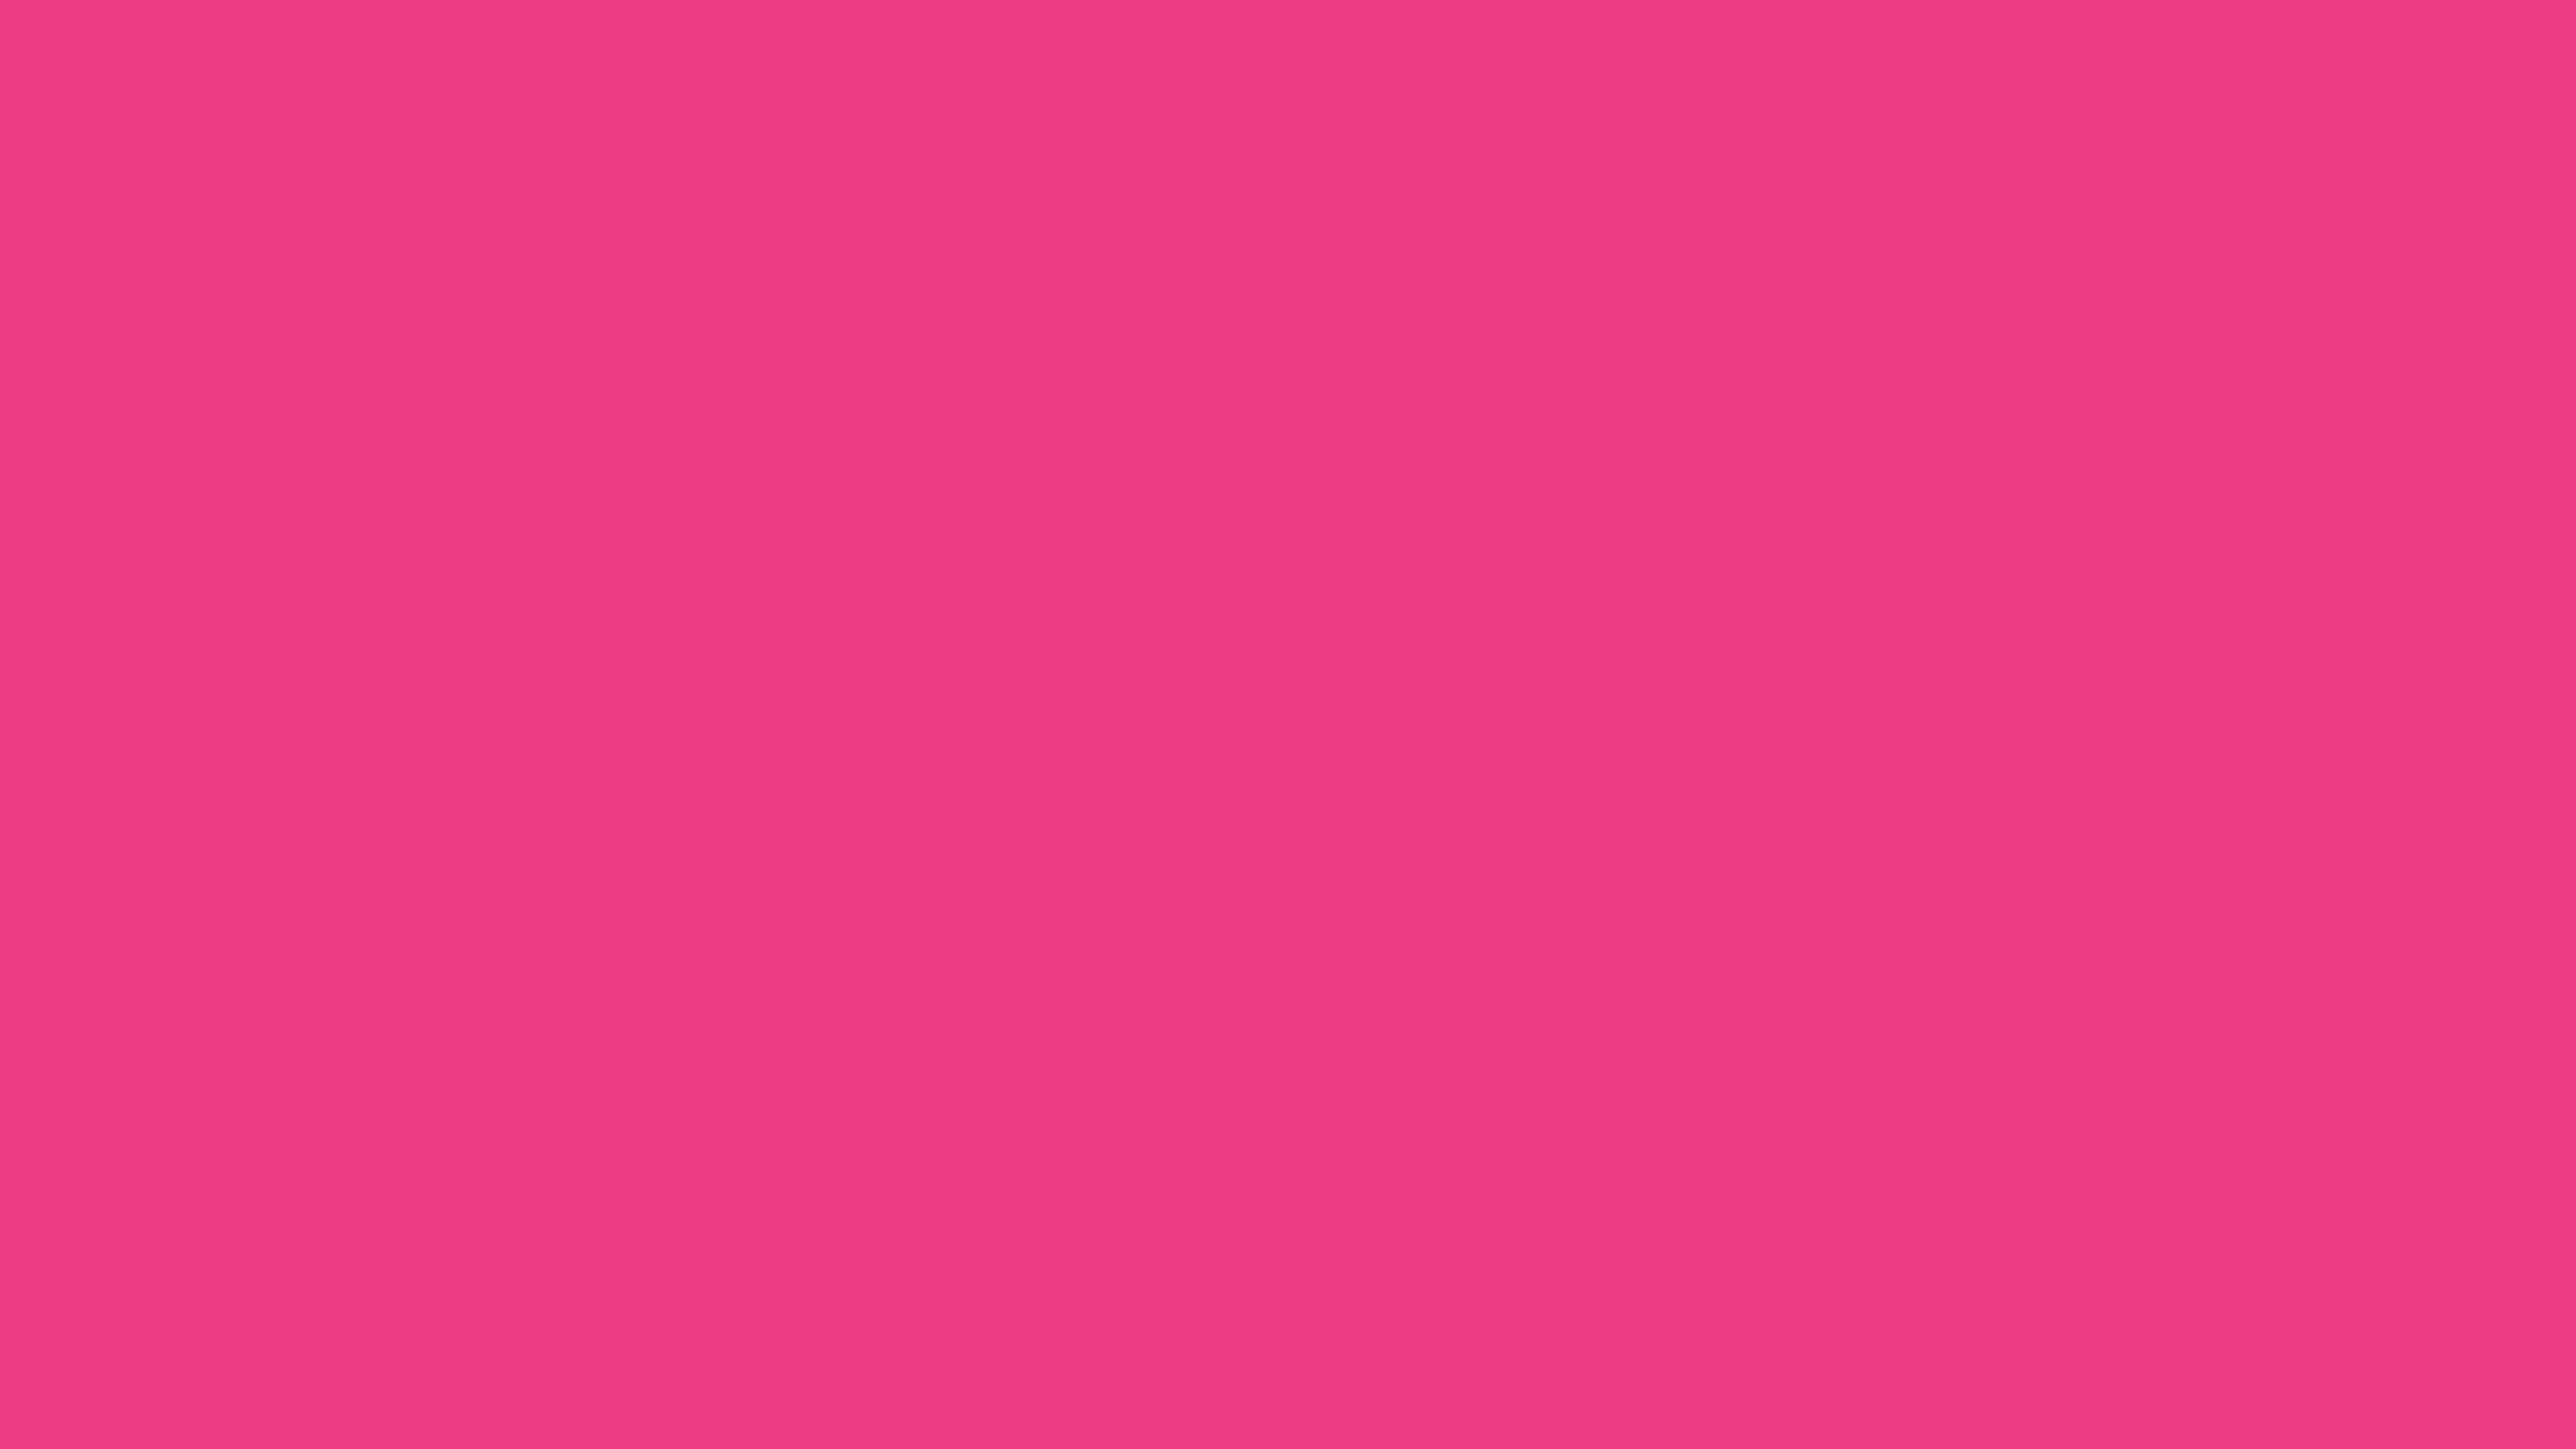 5120x2880 Cerise Pink Solid Color Background